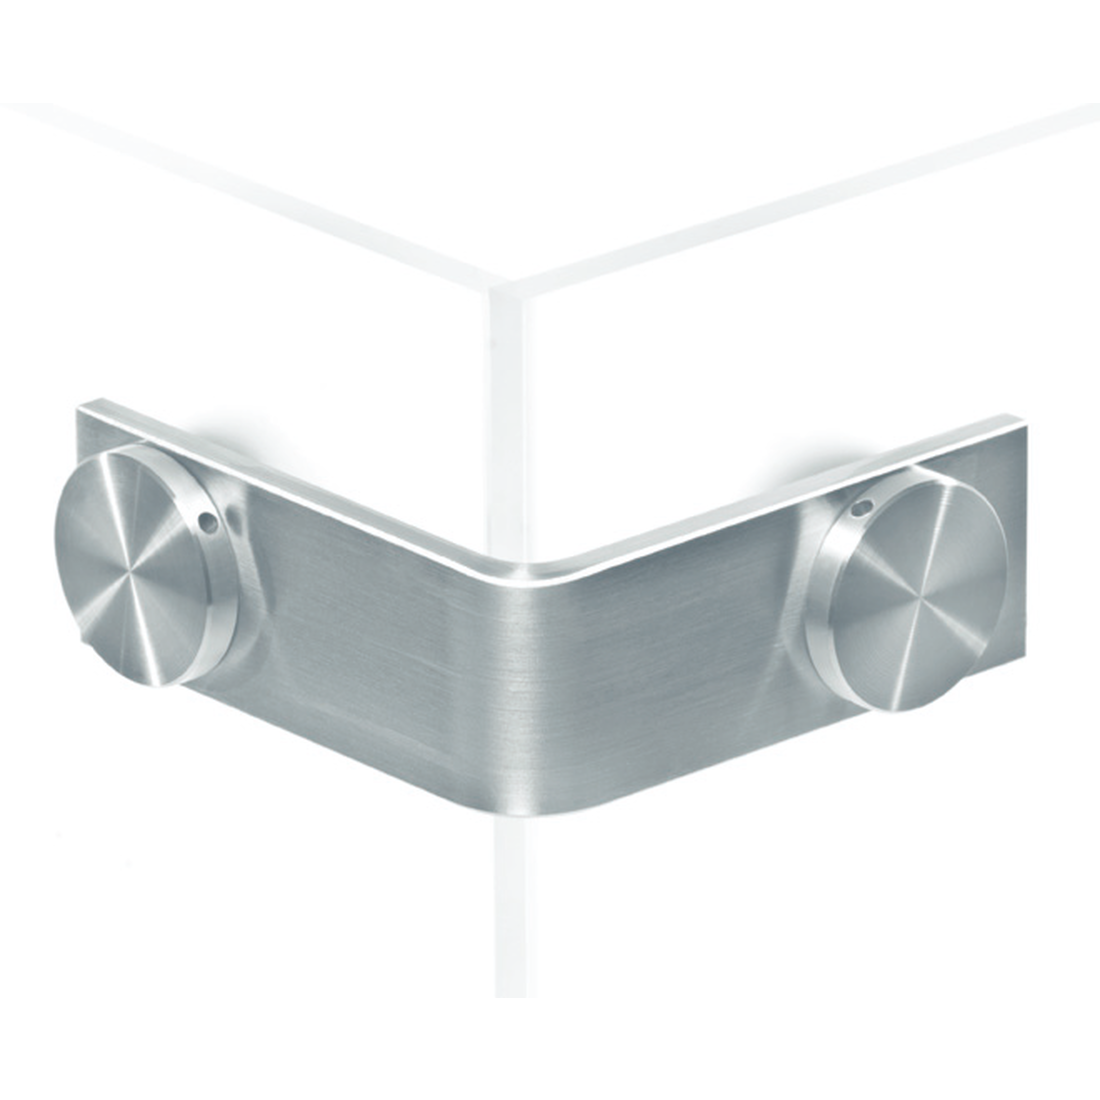 90°-CONNECTOR (OUTER ANGLE), GLASS-GLASS